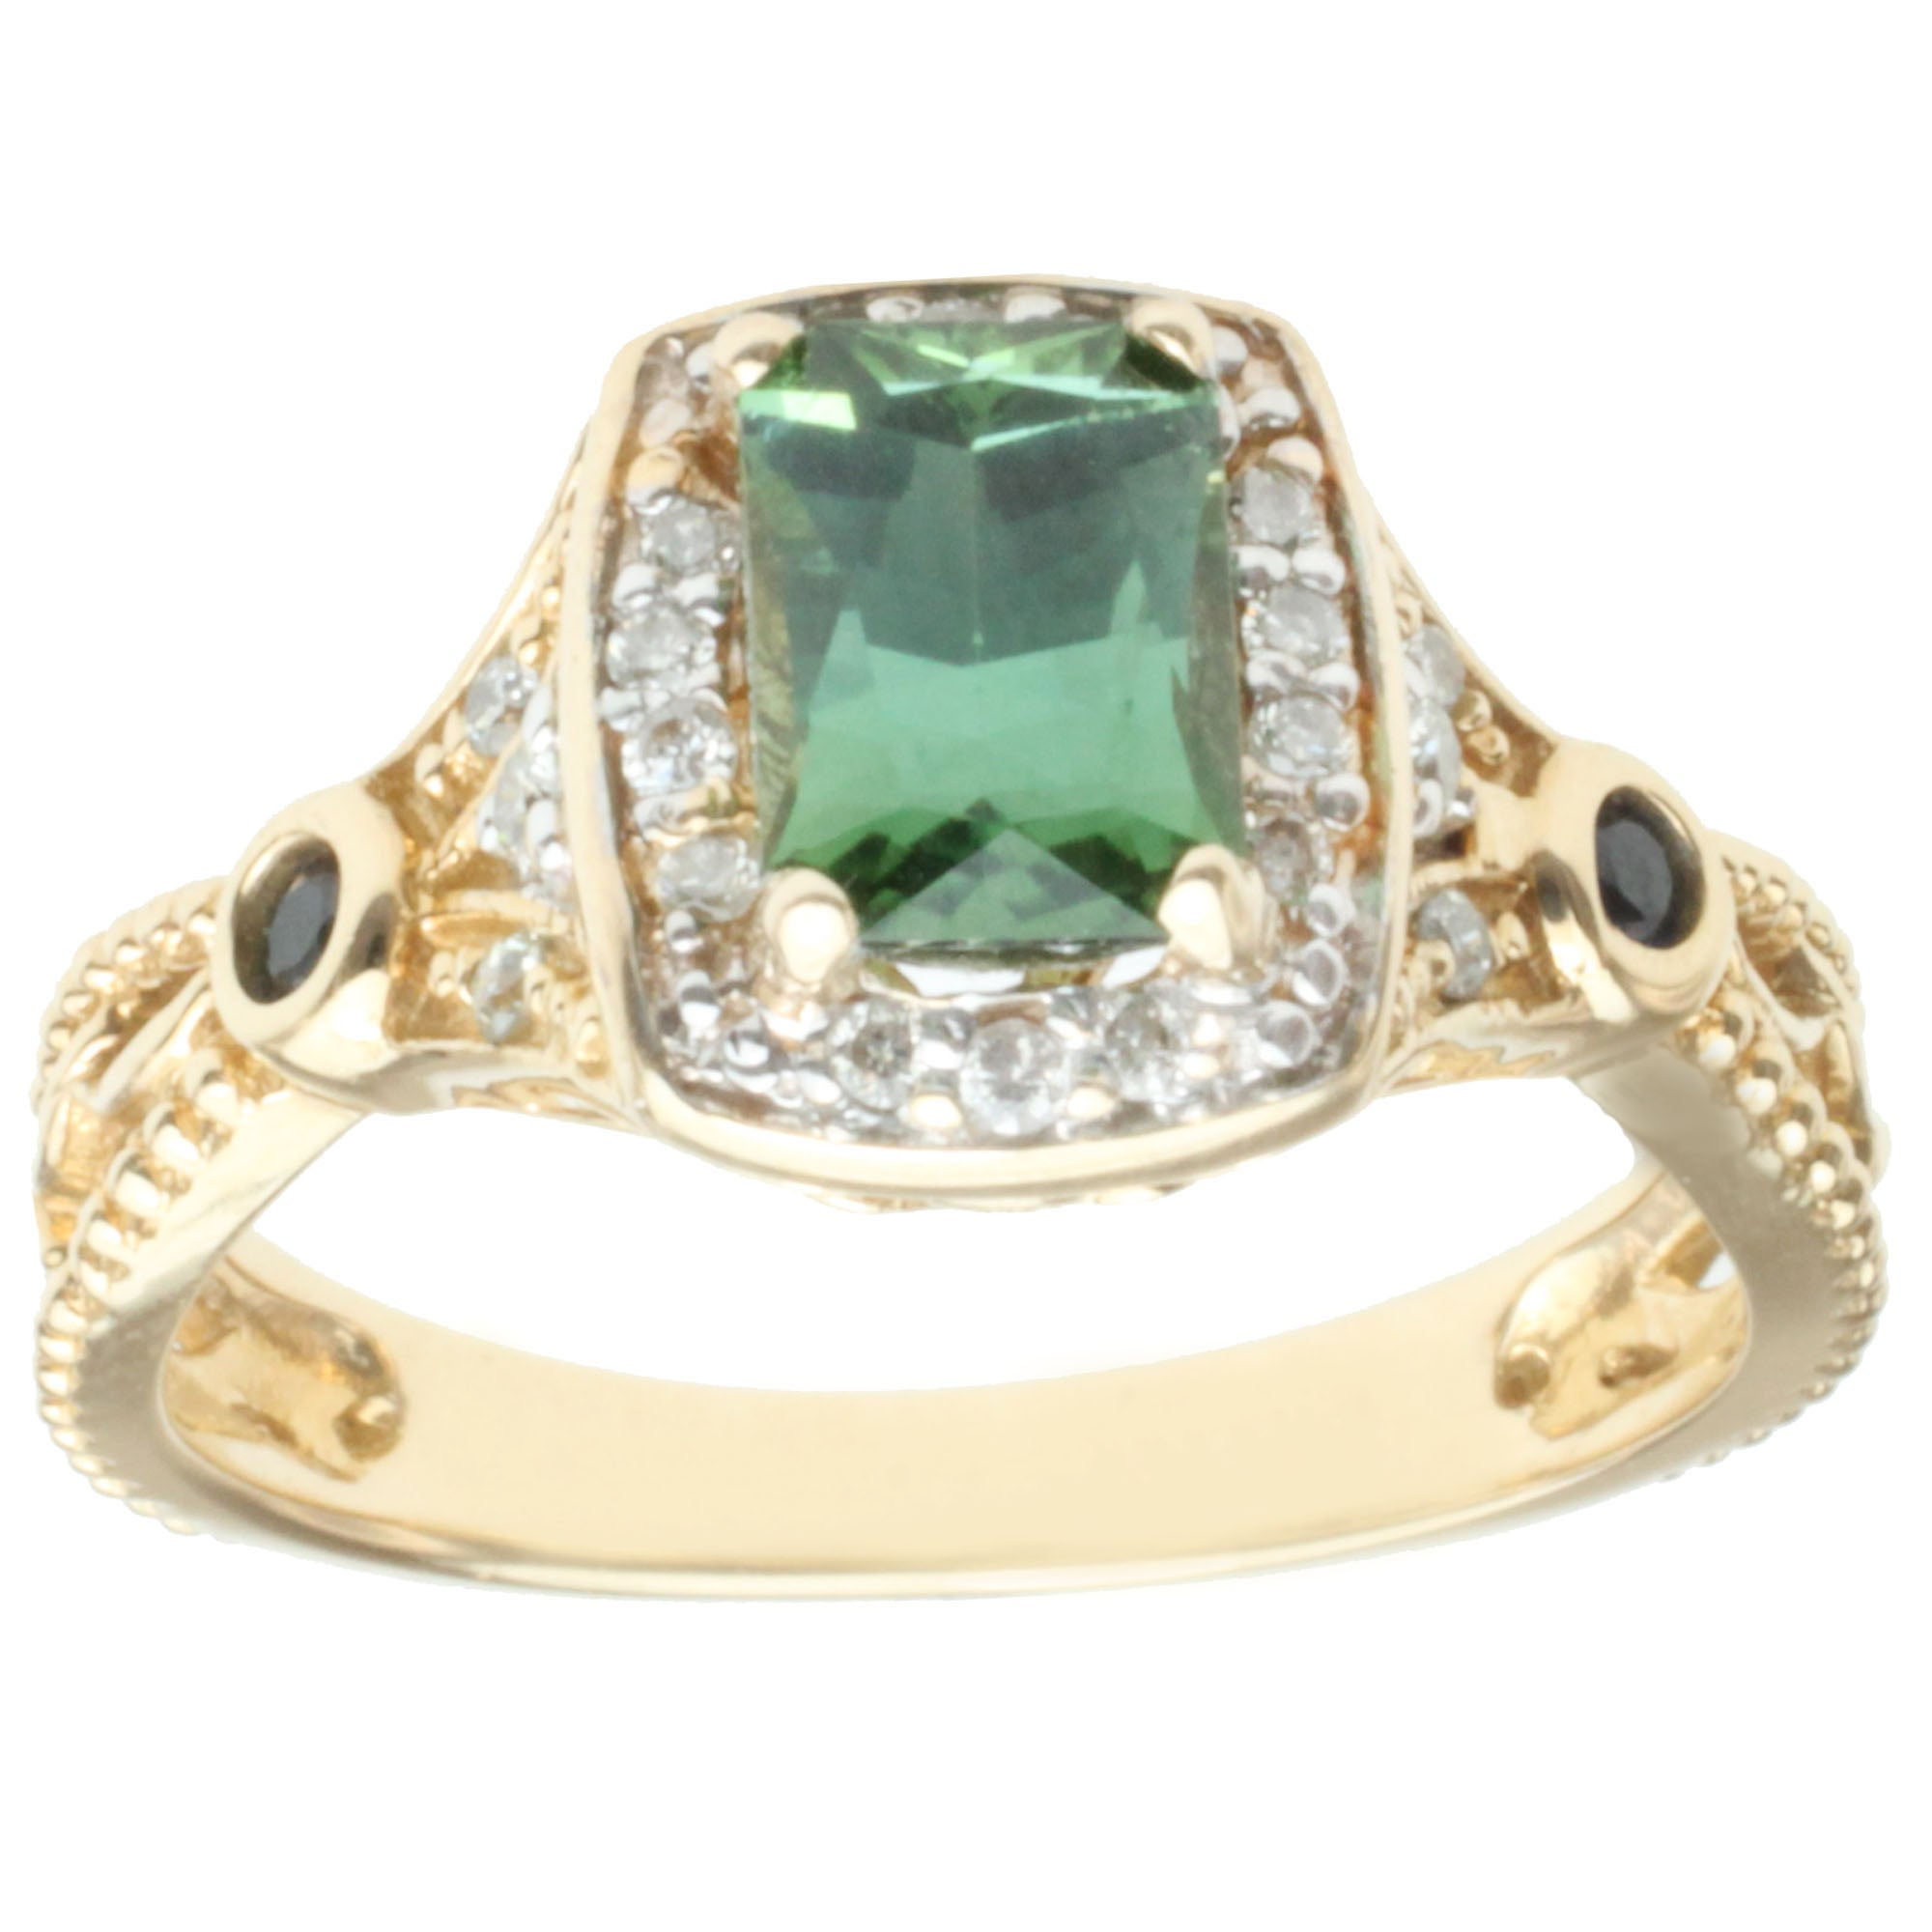 Michael Valitutti 14k Gold Teal Tourmaline, Sapphire and Diamond Ring